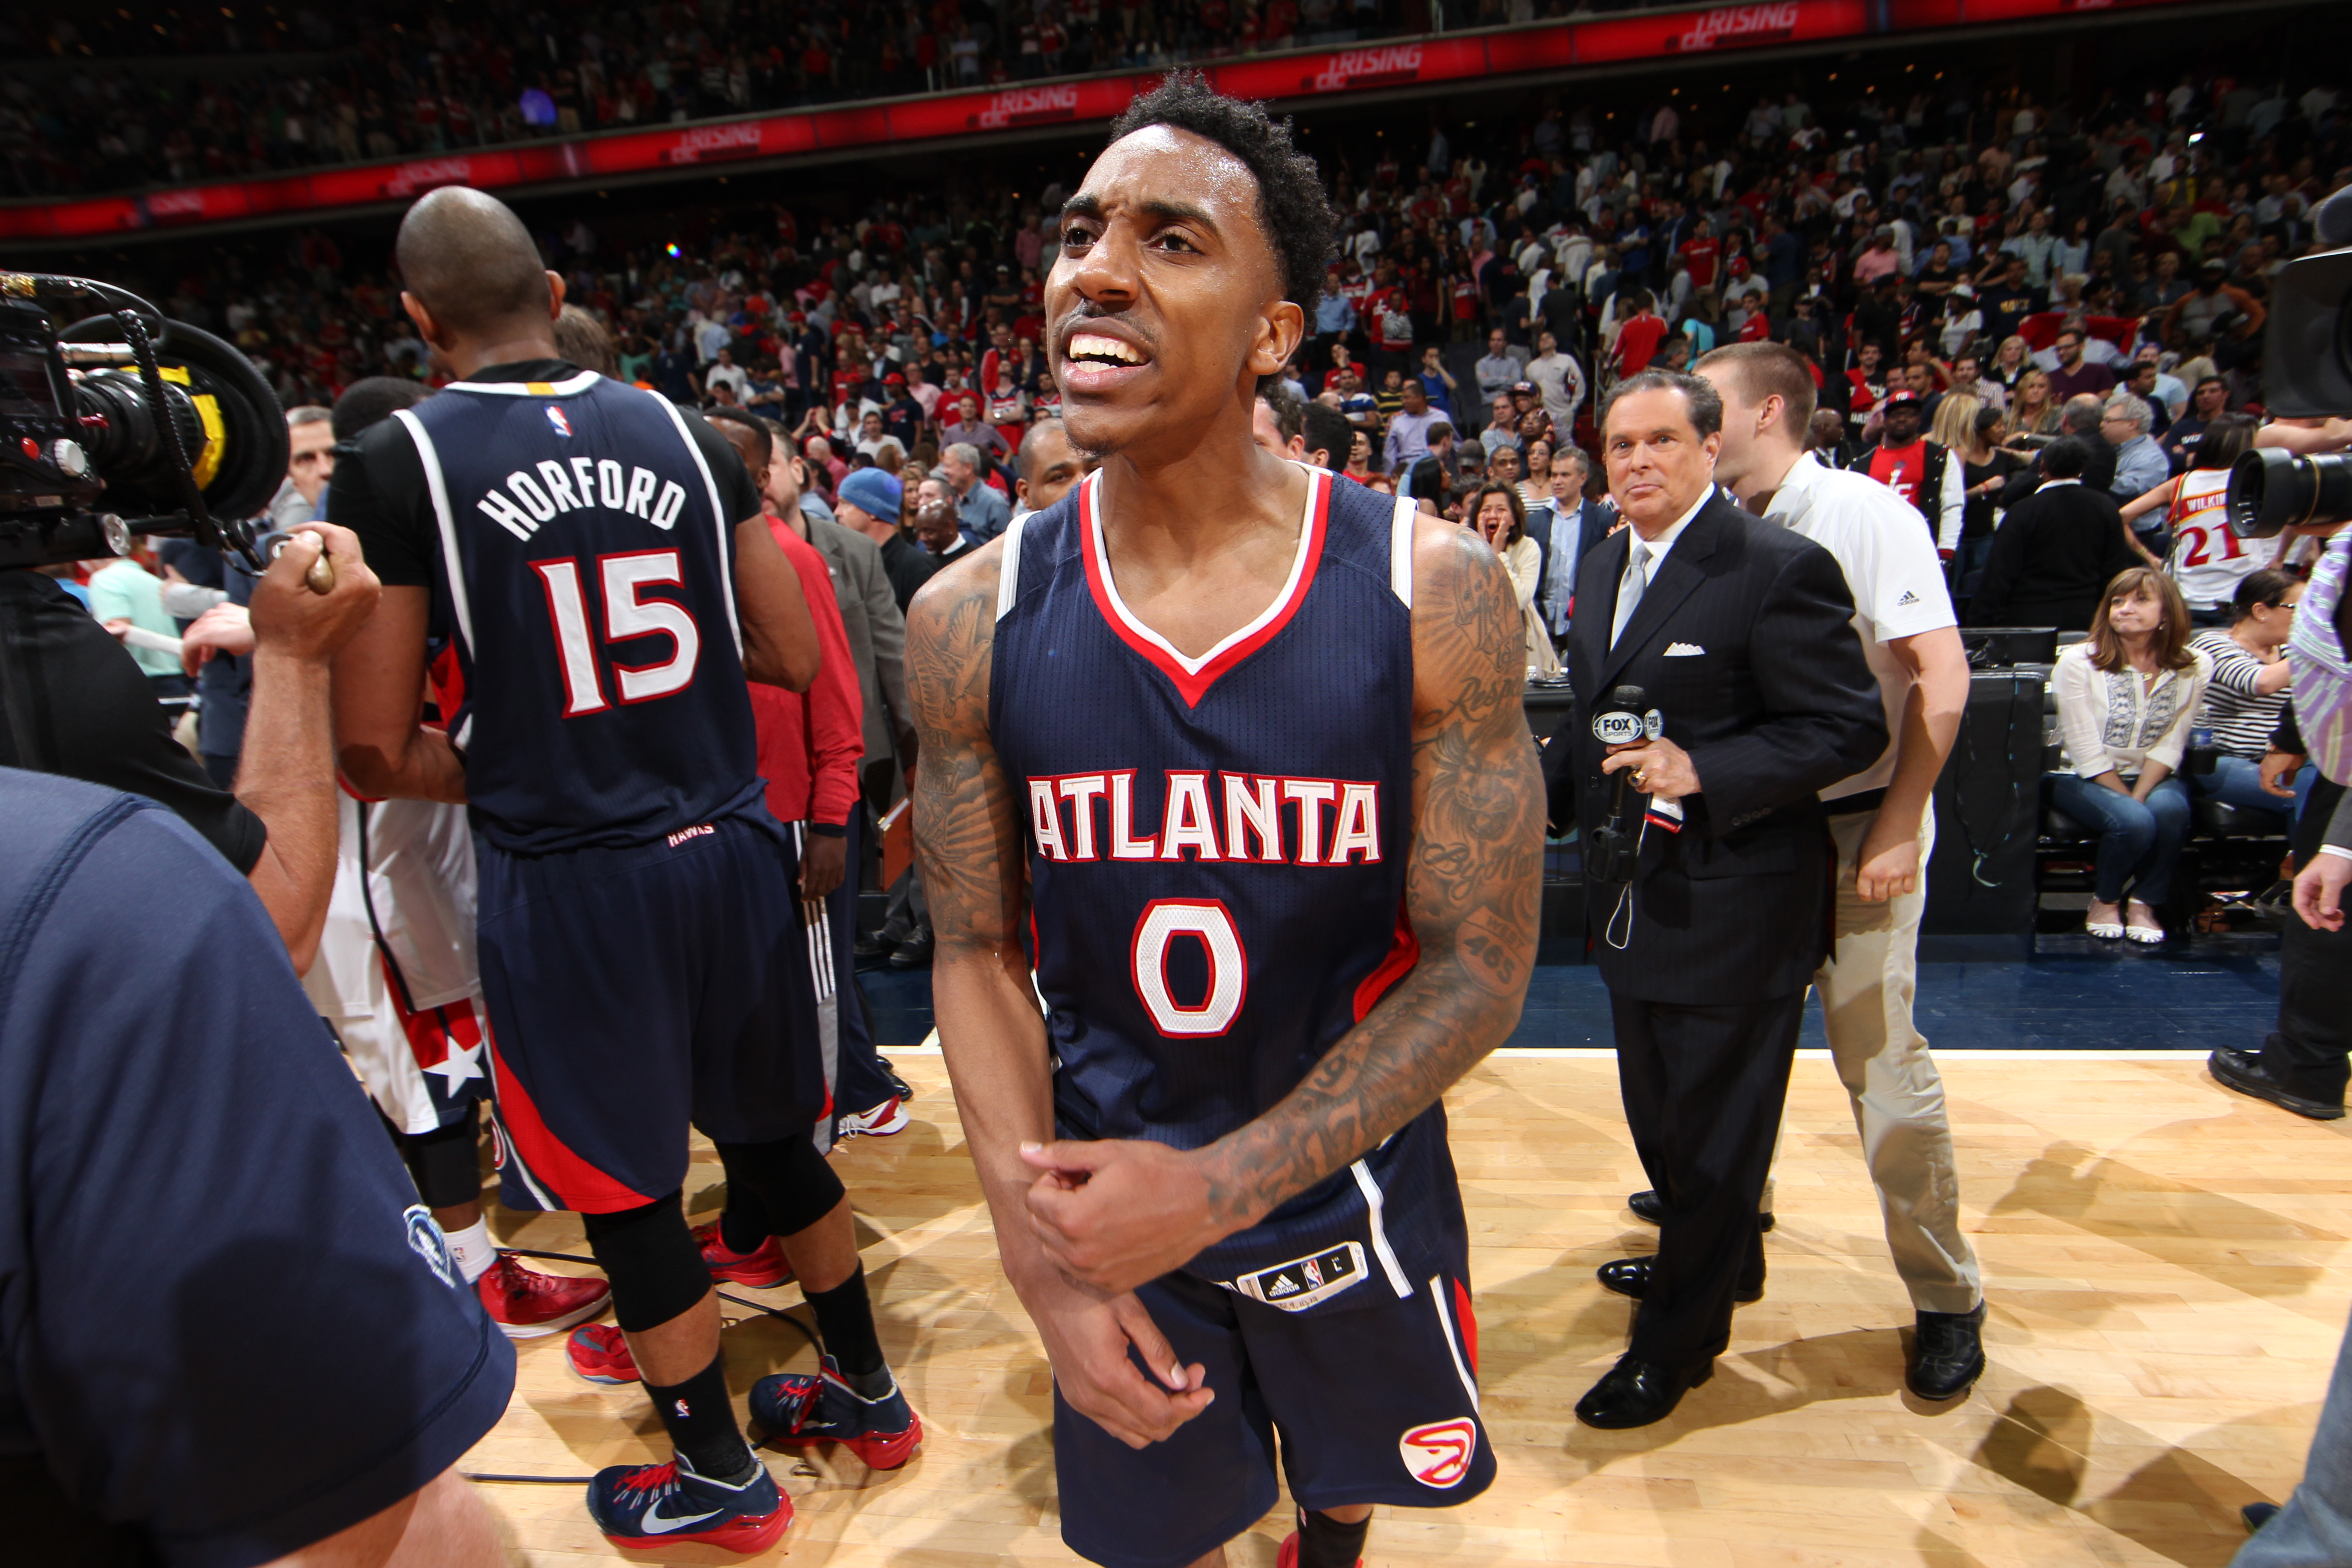 WASHINGTON, DC - MAY 15: Jeff Teague #0 of the Atlanta Hawks celebrates after the win against the Washington Wizards in Game Six of the Eastern Conference Semifinals of the 2015 NBA Playoffs at the Verizon Center on May 15, 2015 in Washington, DC. (Photo